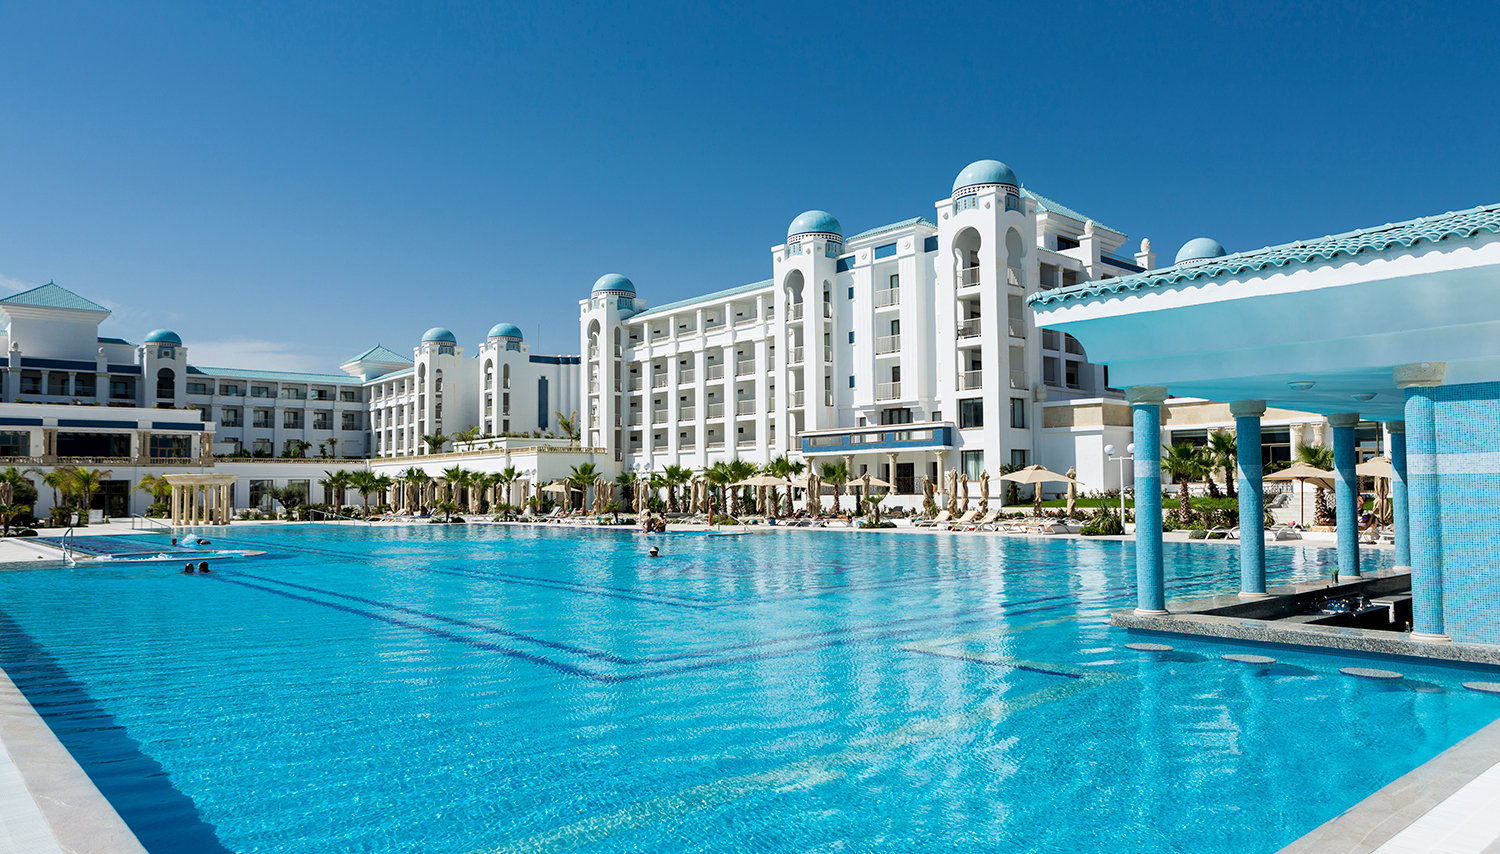 Concorde Green Park Palace hotell (Enfidha, Tuneesia)